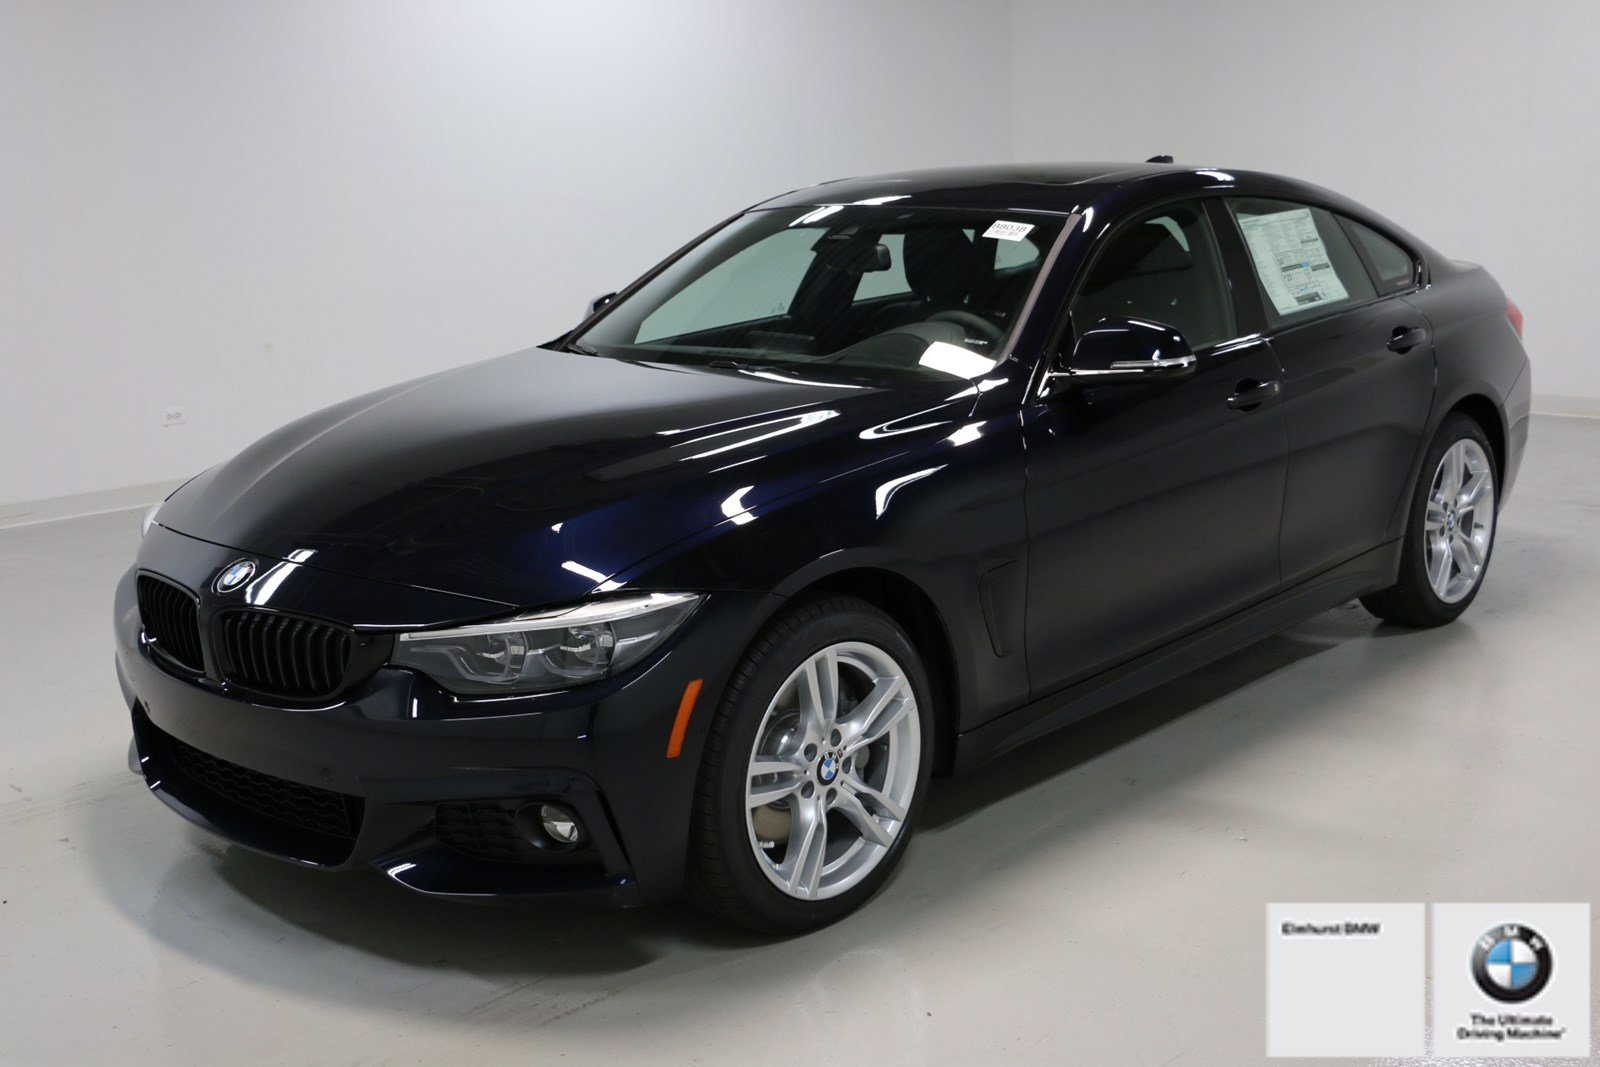 new 2018 bmw 4 series 440i xdrive gran coupe hatchback in elmhurst b8038 elmhurst bmw. Black Bedroom Furniture Sets. Home Design Ideas